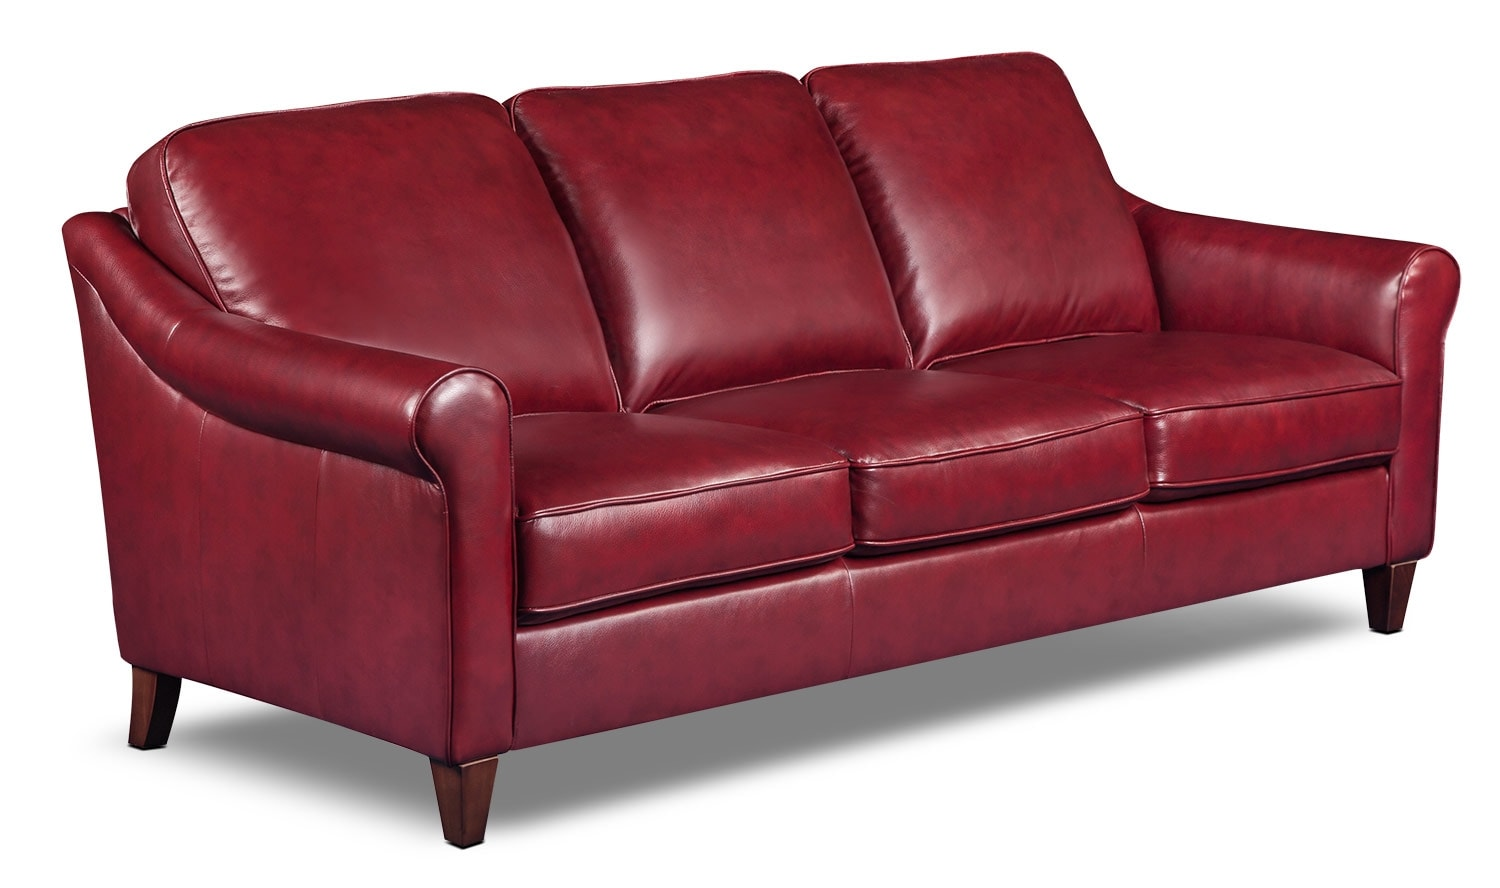 Living Room Furniture - Lexa Genuine Leather Sofa – Burgundy